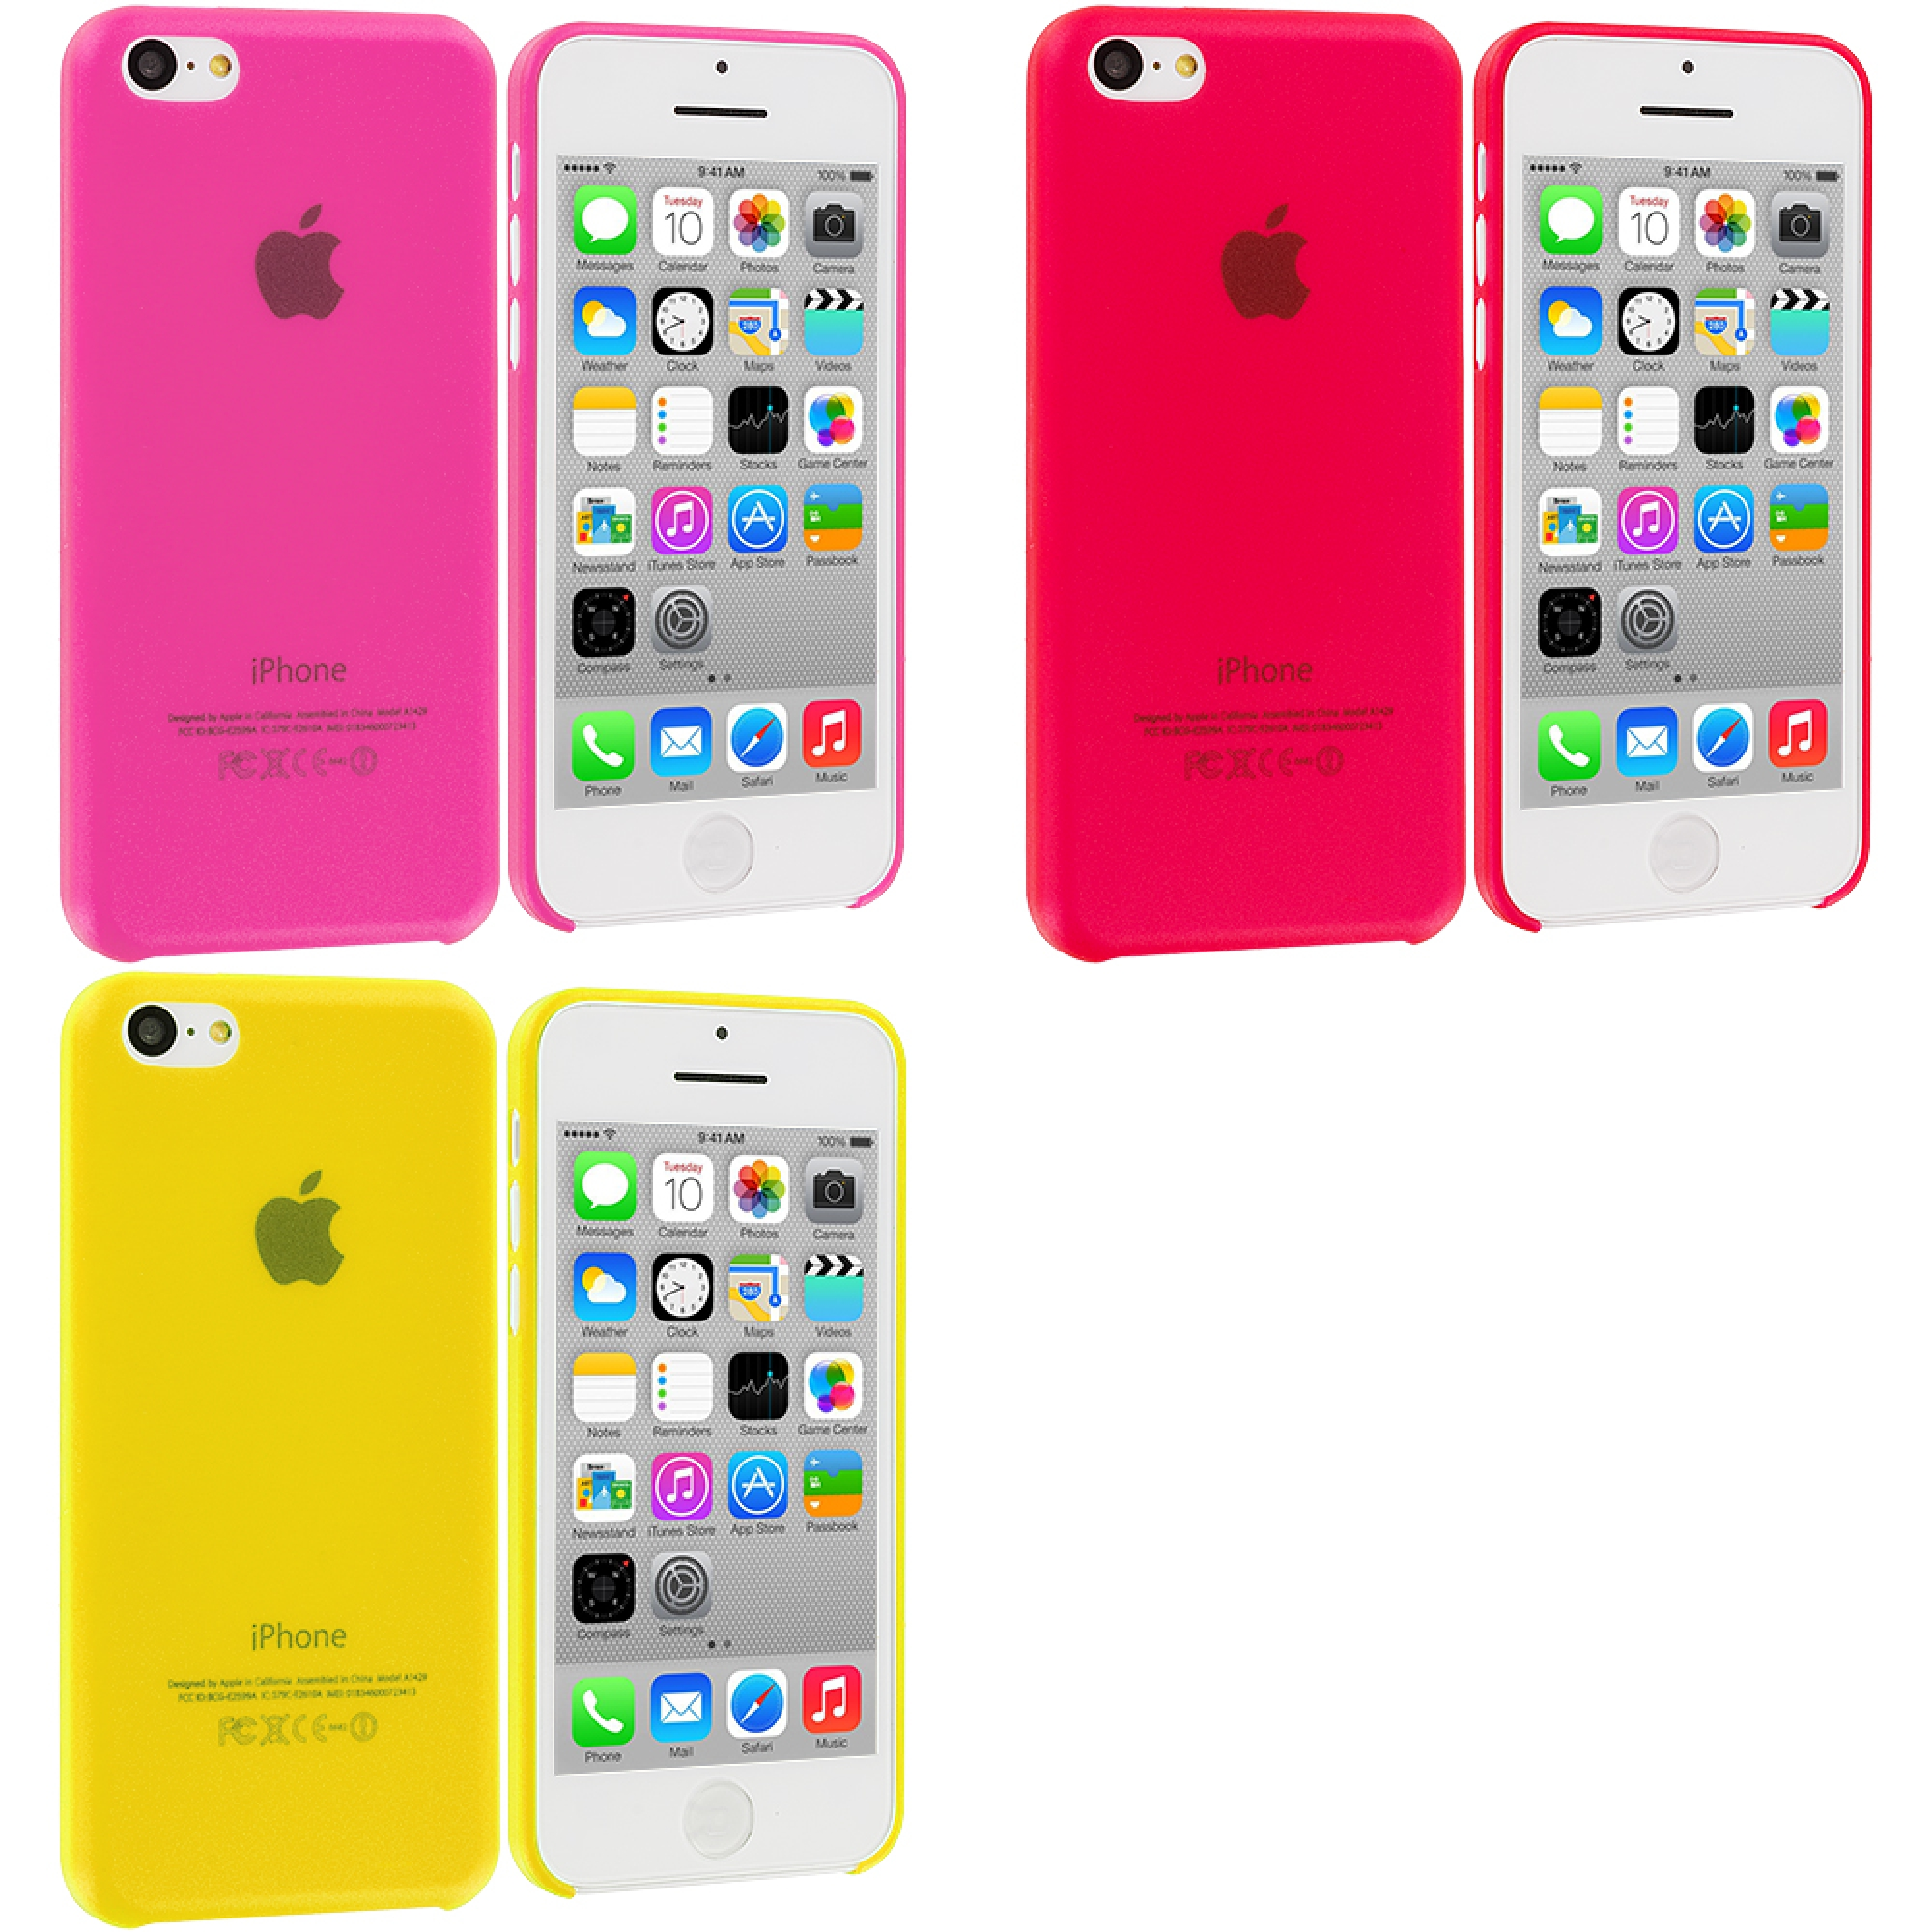 Apple iPhone 5C 3 in 1 Combo Bundle Pack - Hot Pink Yellow 0.3mm Crystal Hard Back Cover Case